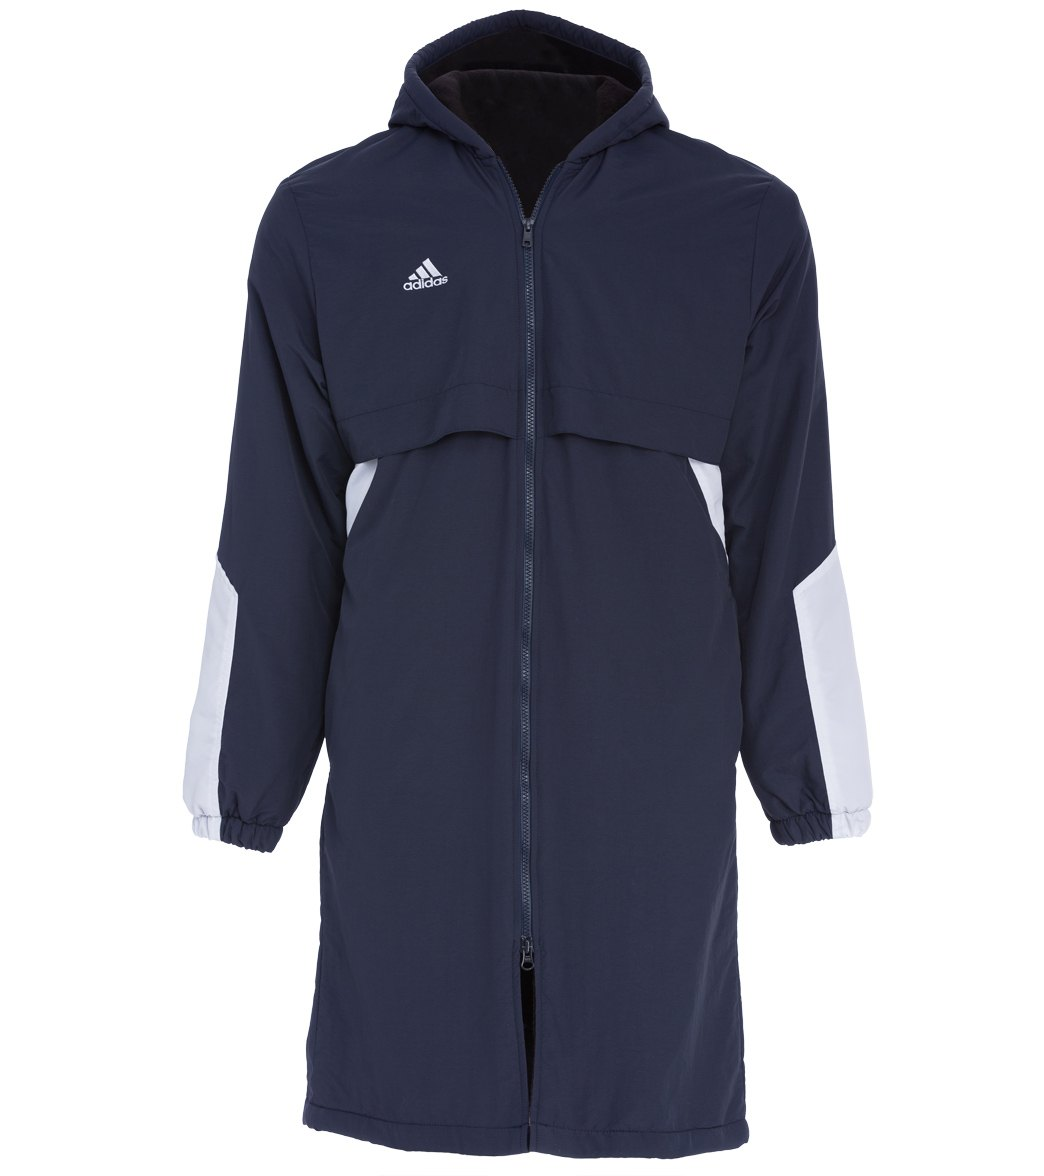 parkas outlet adidas montevideo